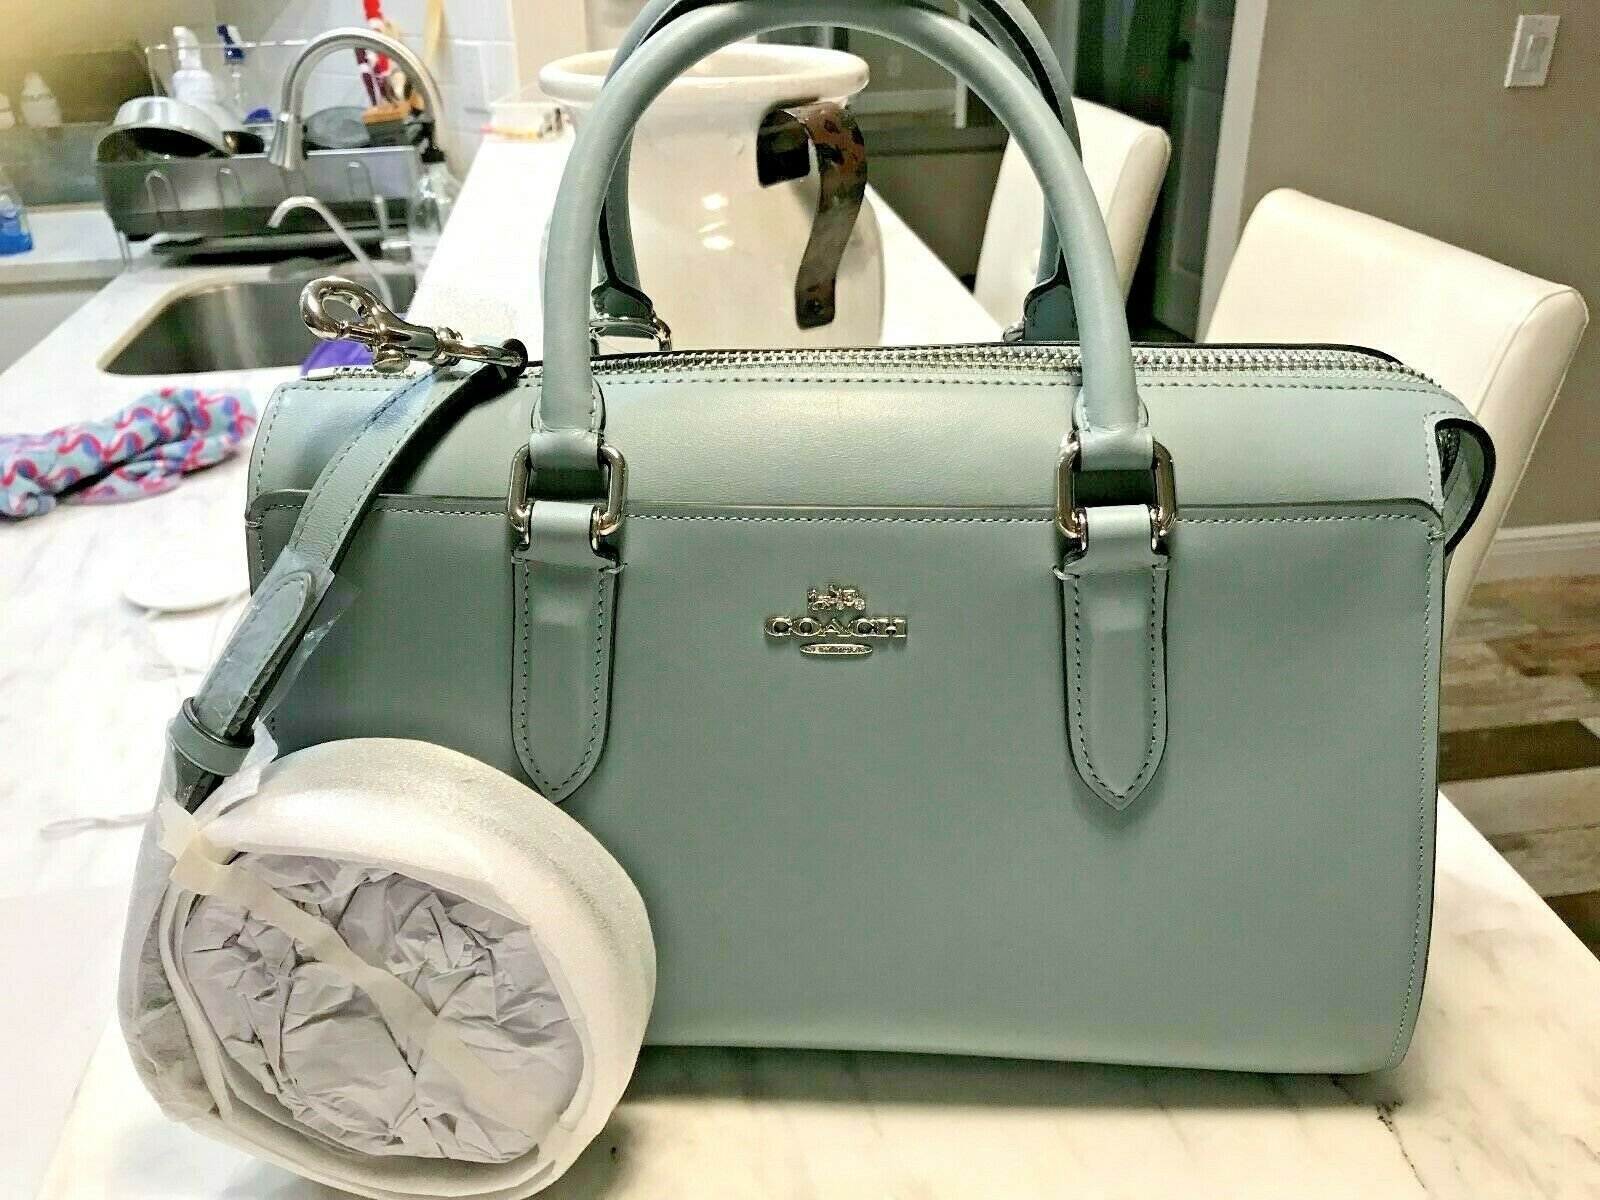 47fa24708 COACH Bond Bag Convertible Calf Leather Satchel in Sage Blue 31713 Msrp 395